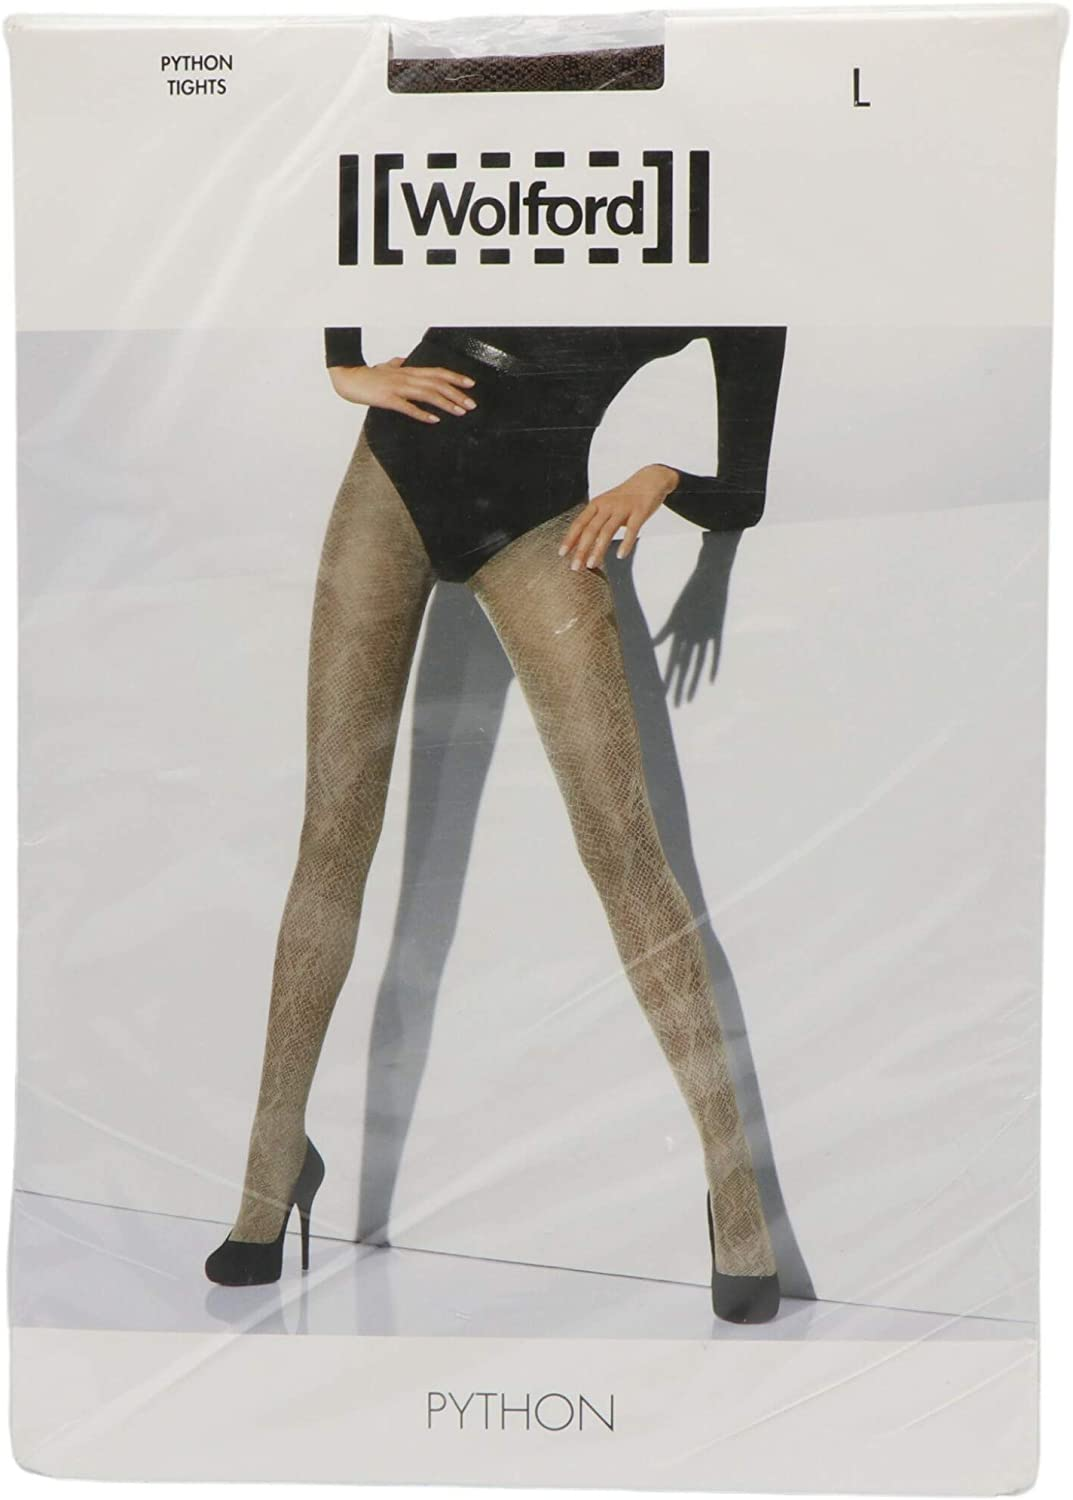 Wolford Python Patterned Tights Hosiery (L Chocolate / Black)